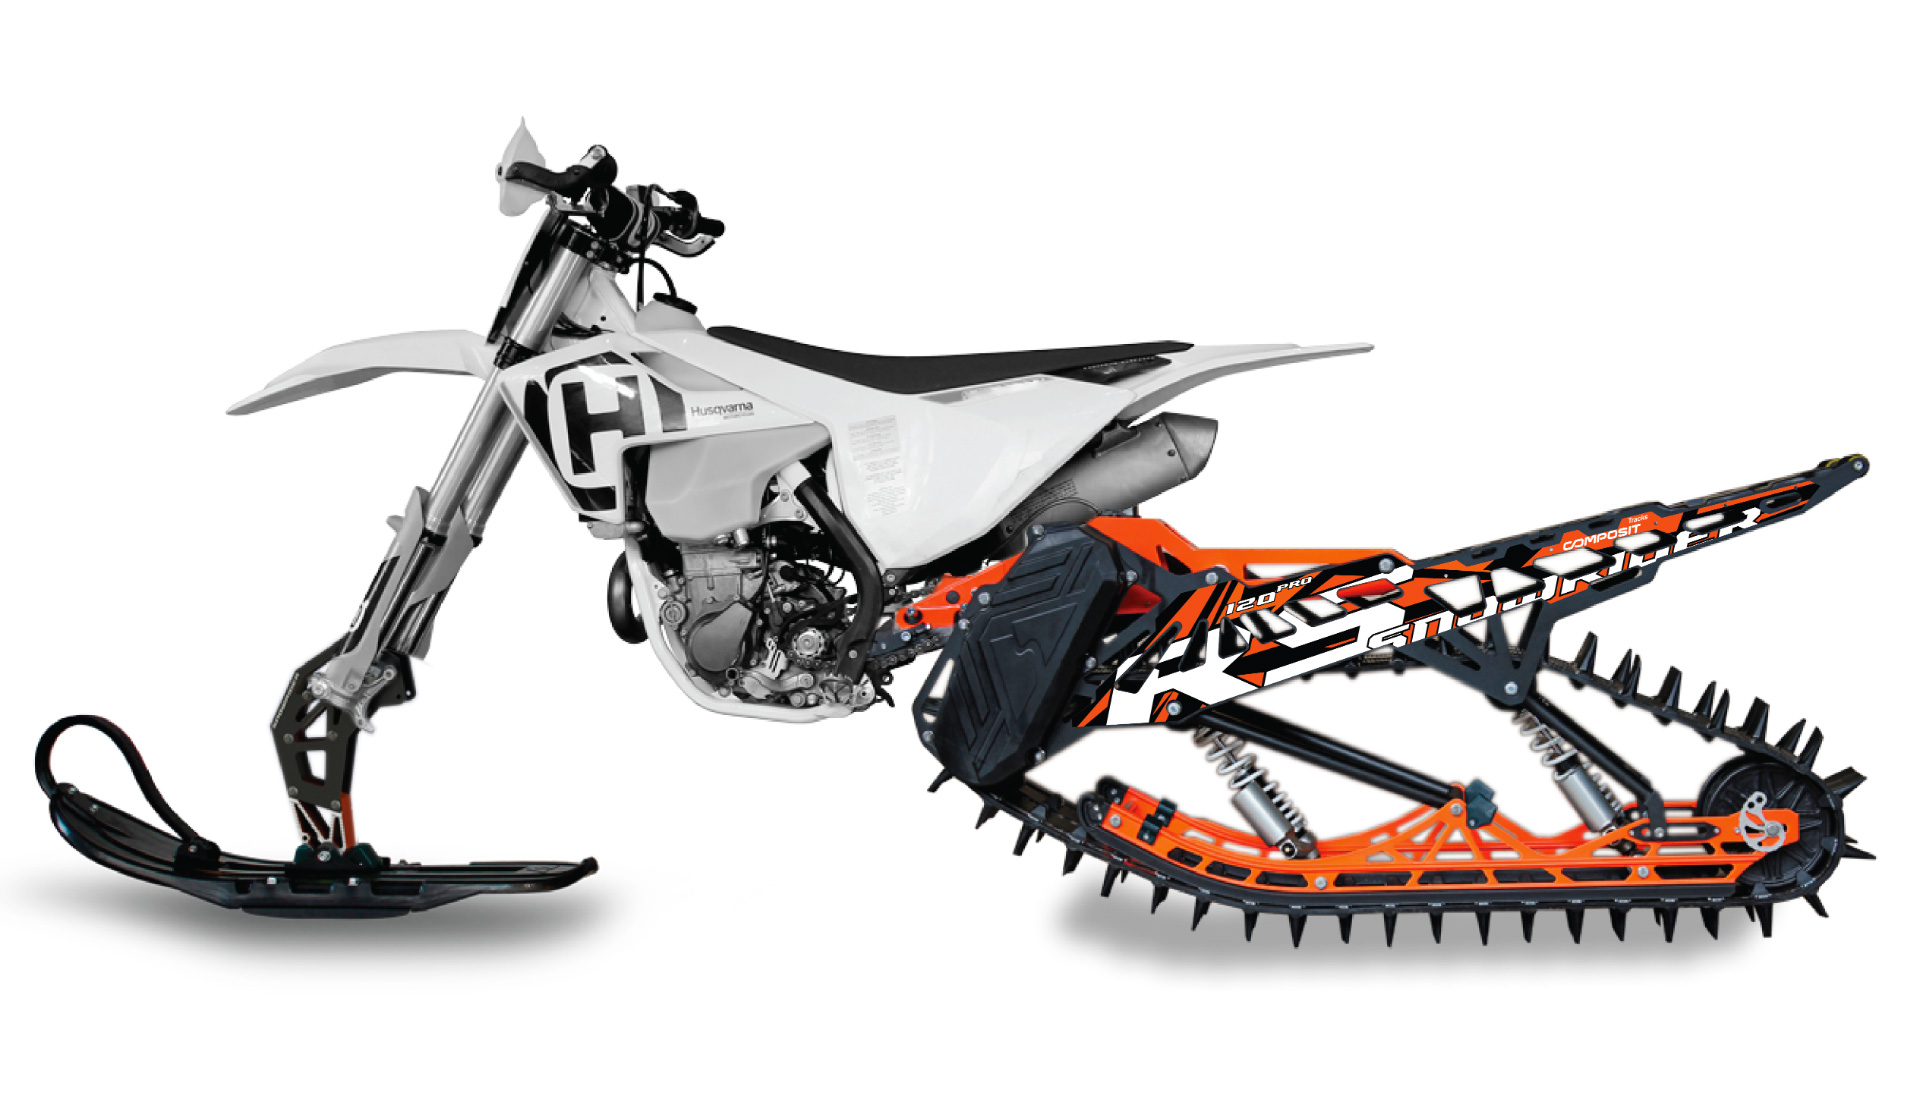 This Kit Turns Your Motocross Bike into a Snow-Mo at werd.com